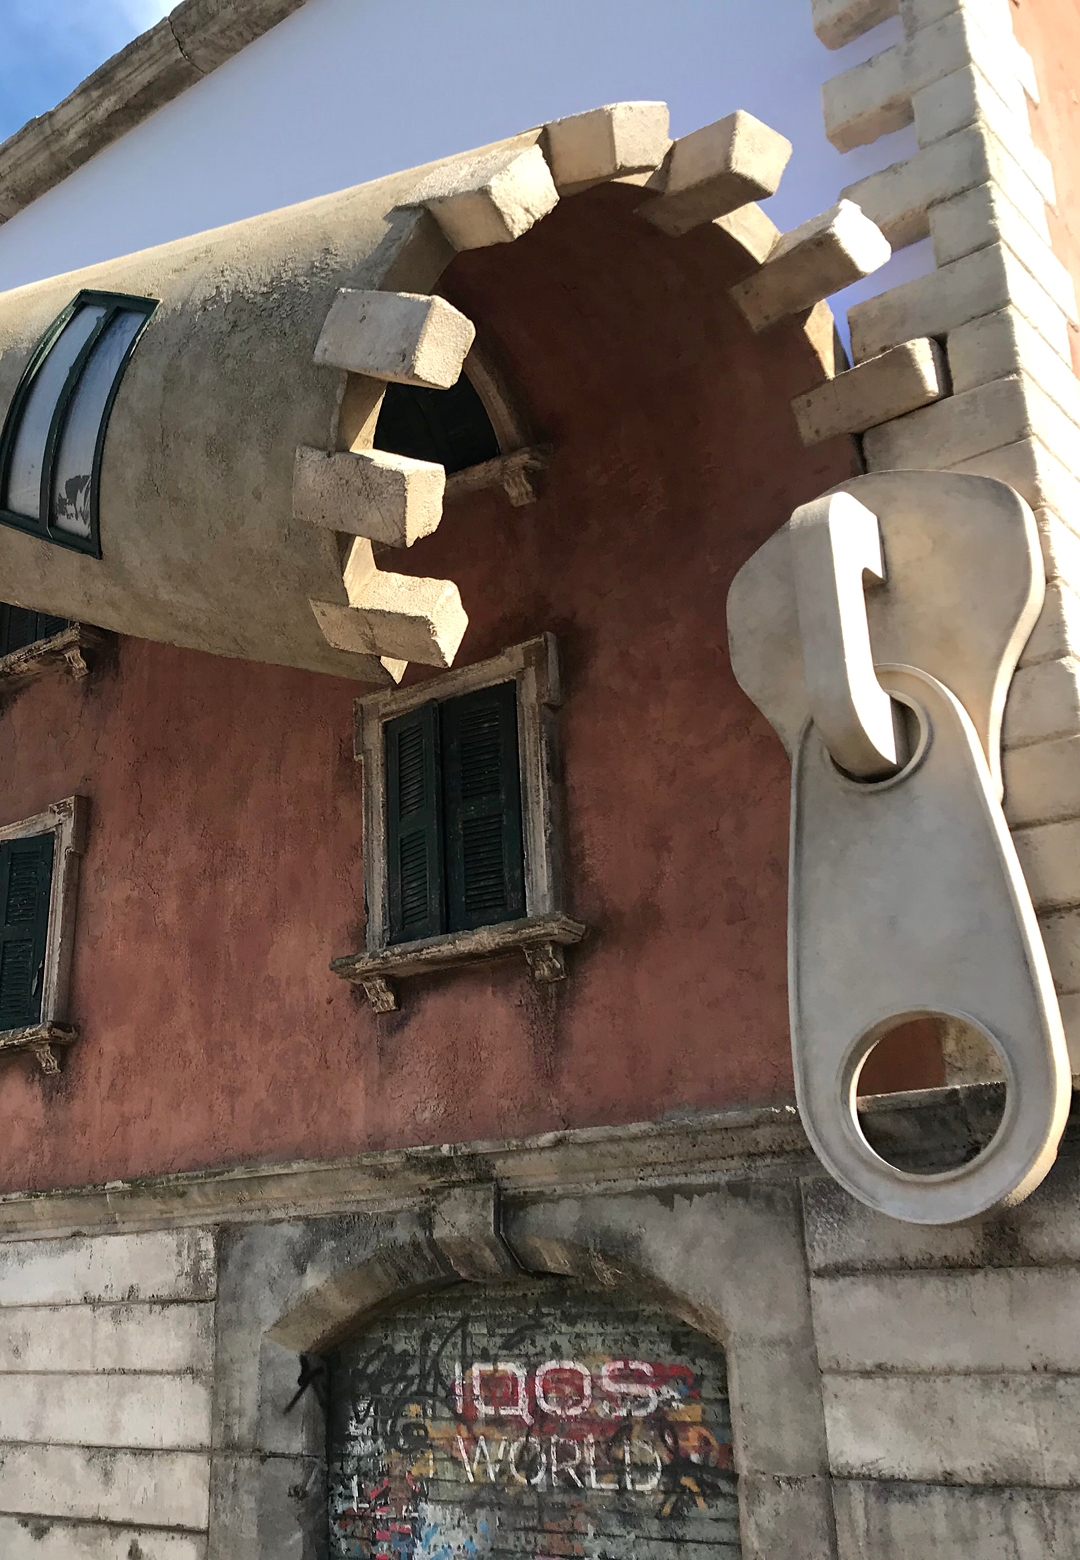 Alex Chinneck unzips the façade of an old building in Milan| Alex Chinneck| IQOS| Philip Morris International| STIR